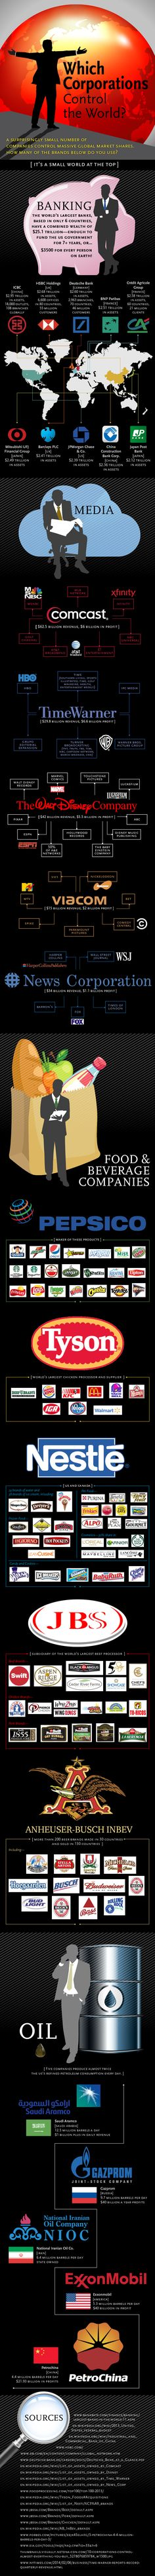 Which Corporations Control the World?   #Infographic #Brands #Market